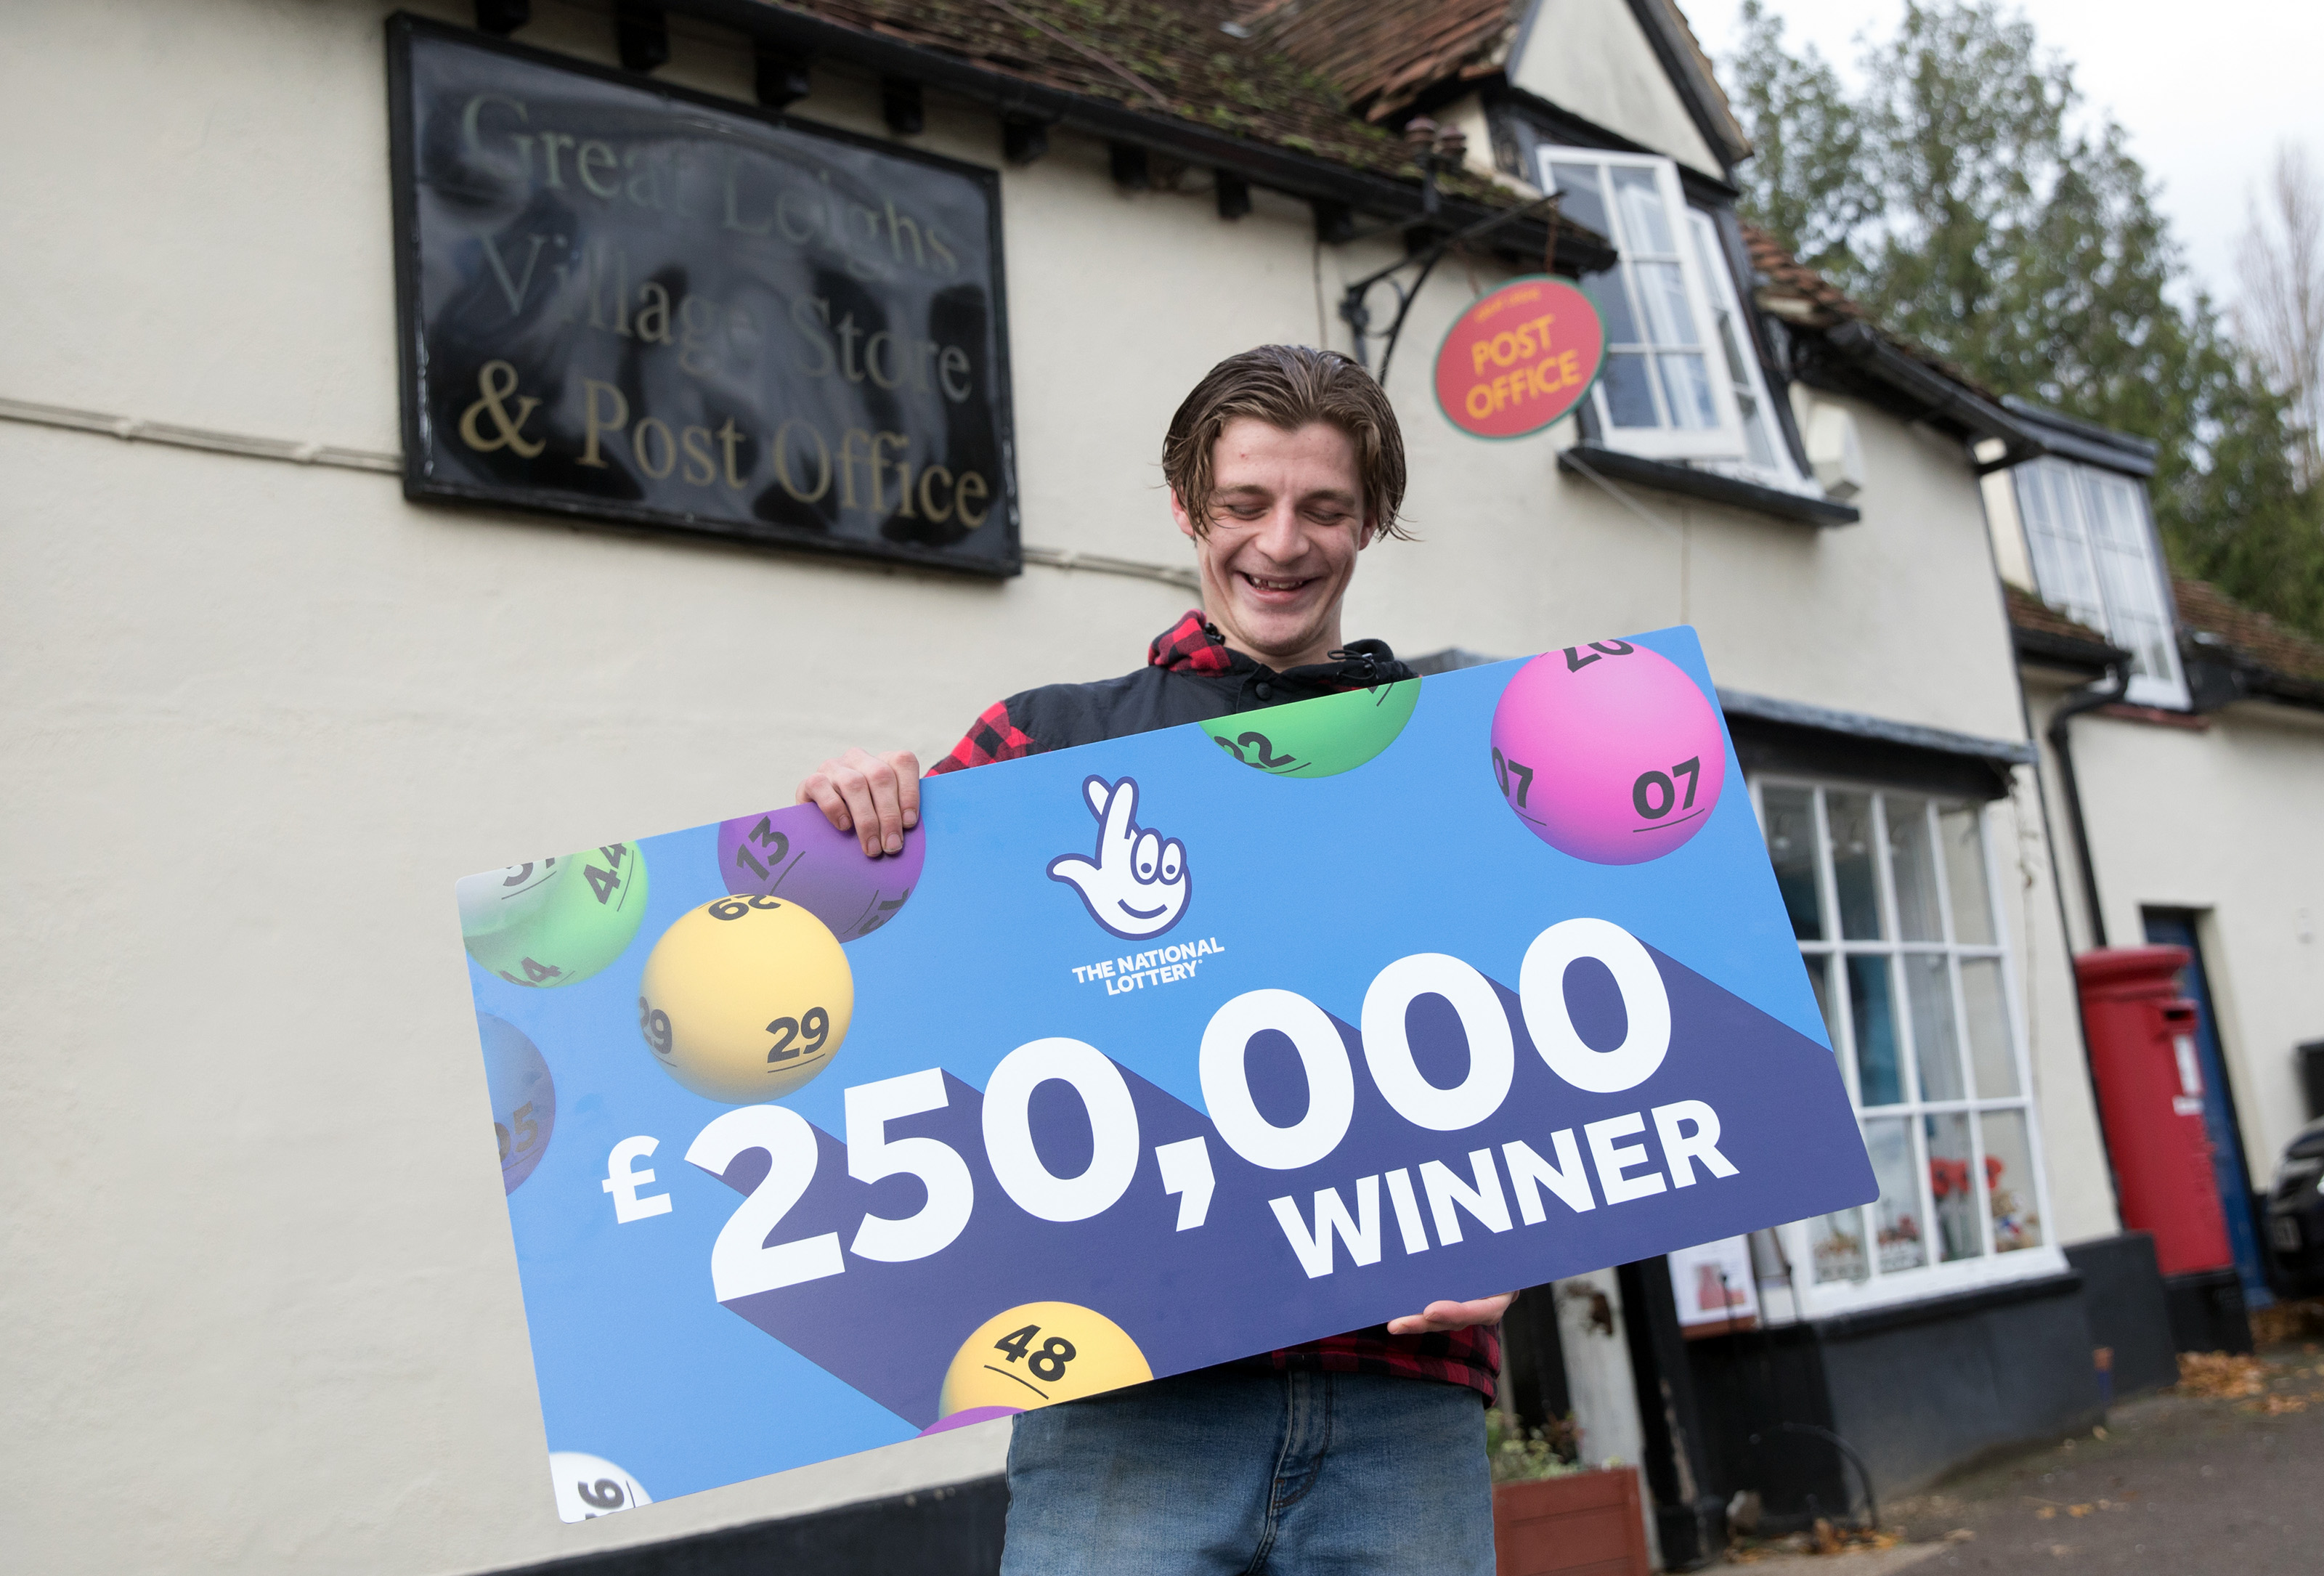 Digger driver George Bates plans to use some of his winnings to buy a hot tub for his garden. (National Lottery/ PA)